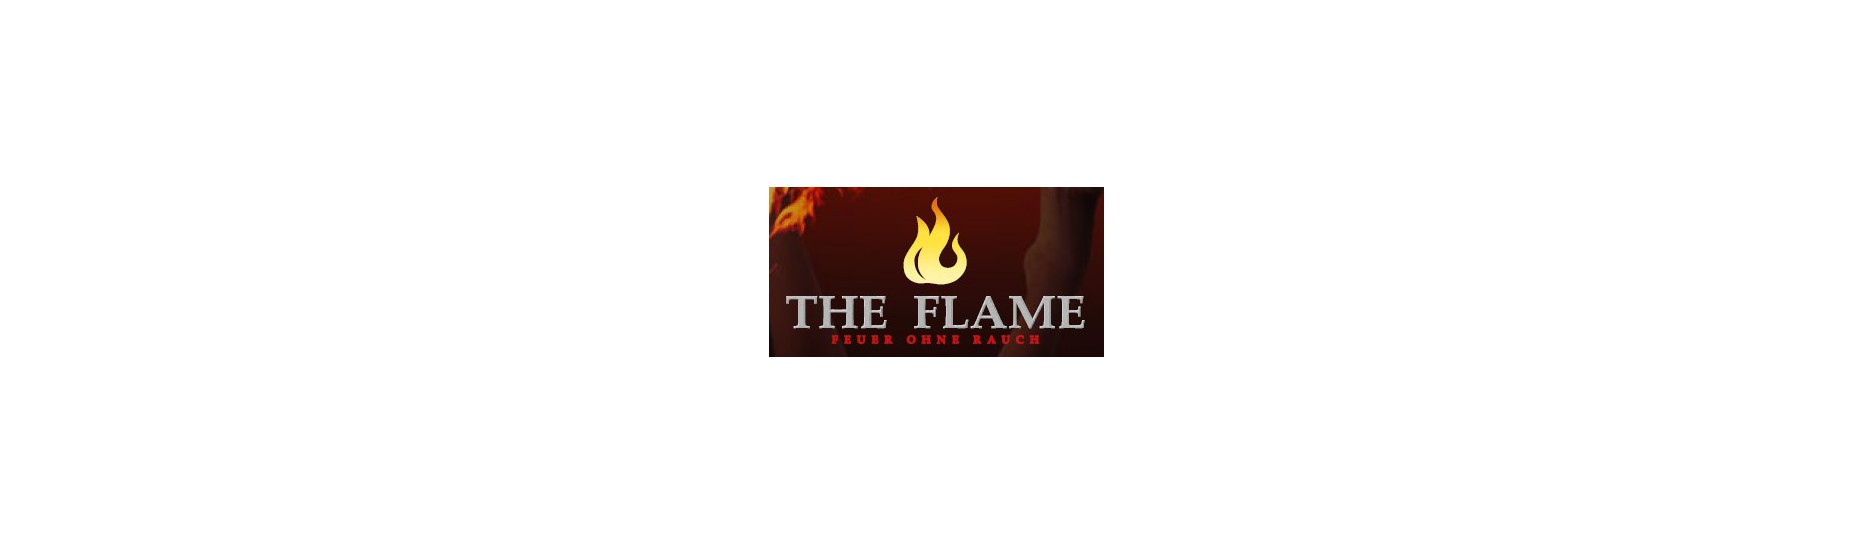 krby THE FLAME